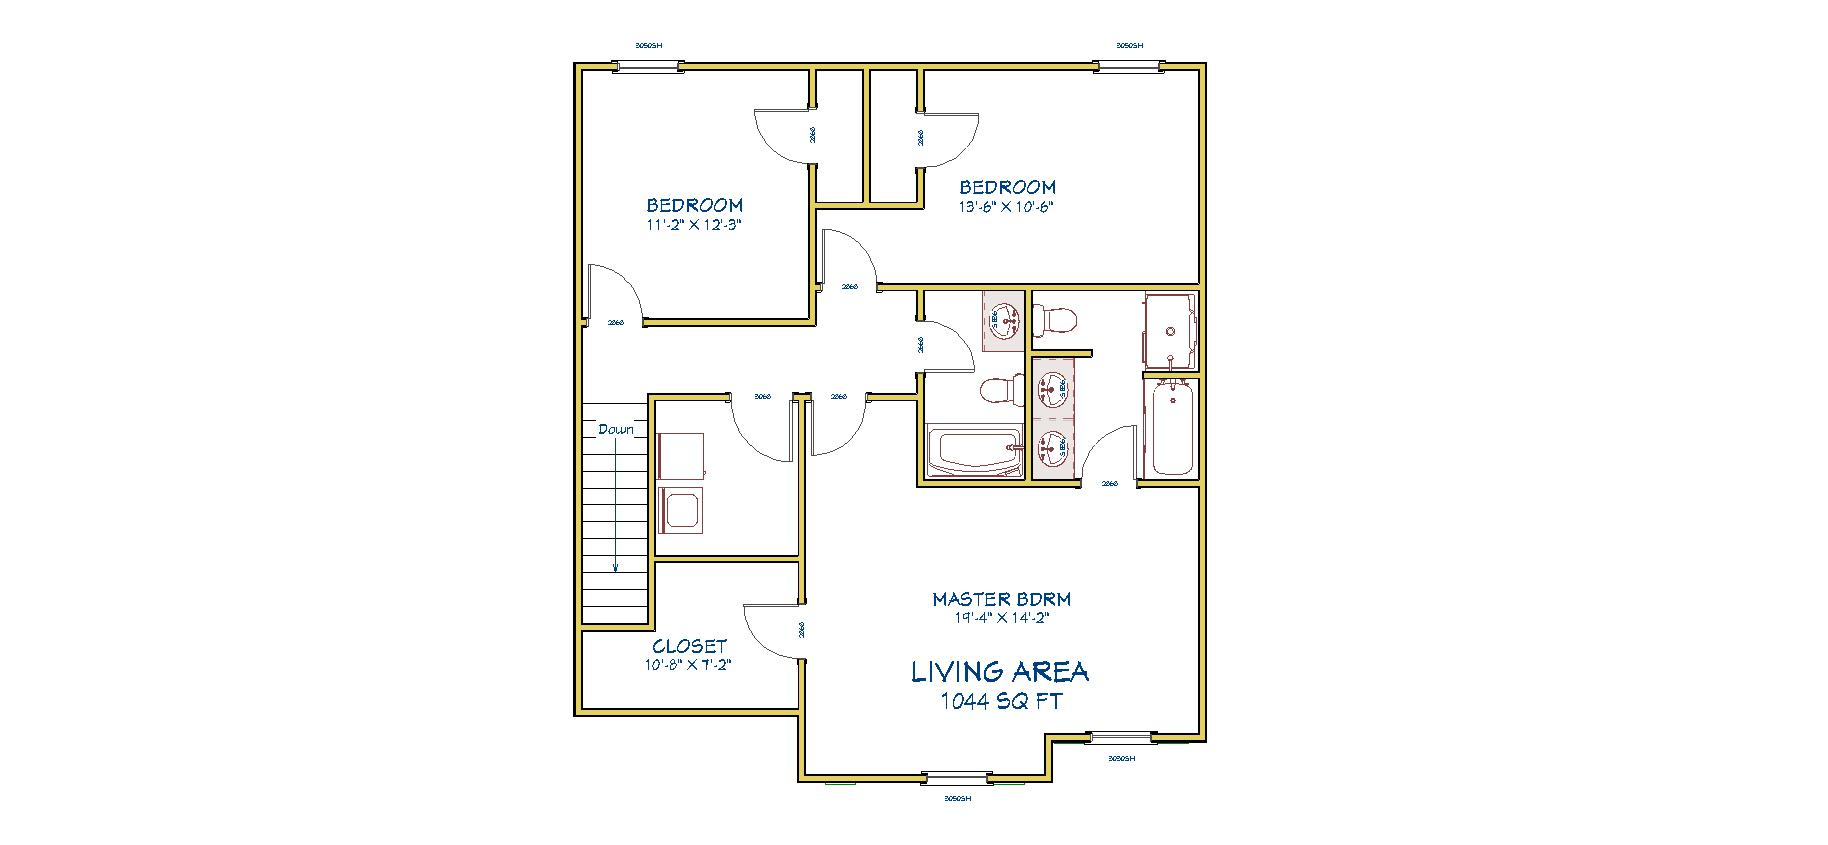 Kitchen Floor Plans With Island And Walk In Pantry 100  Kitchen Floor Plans With Island And Walk In Pantry